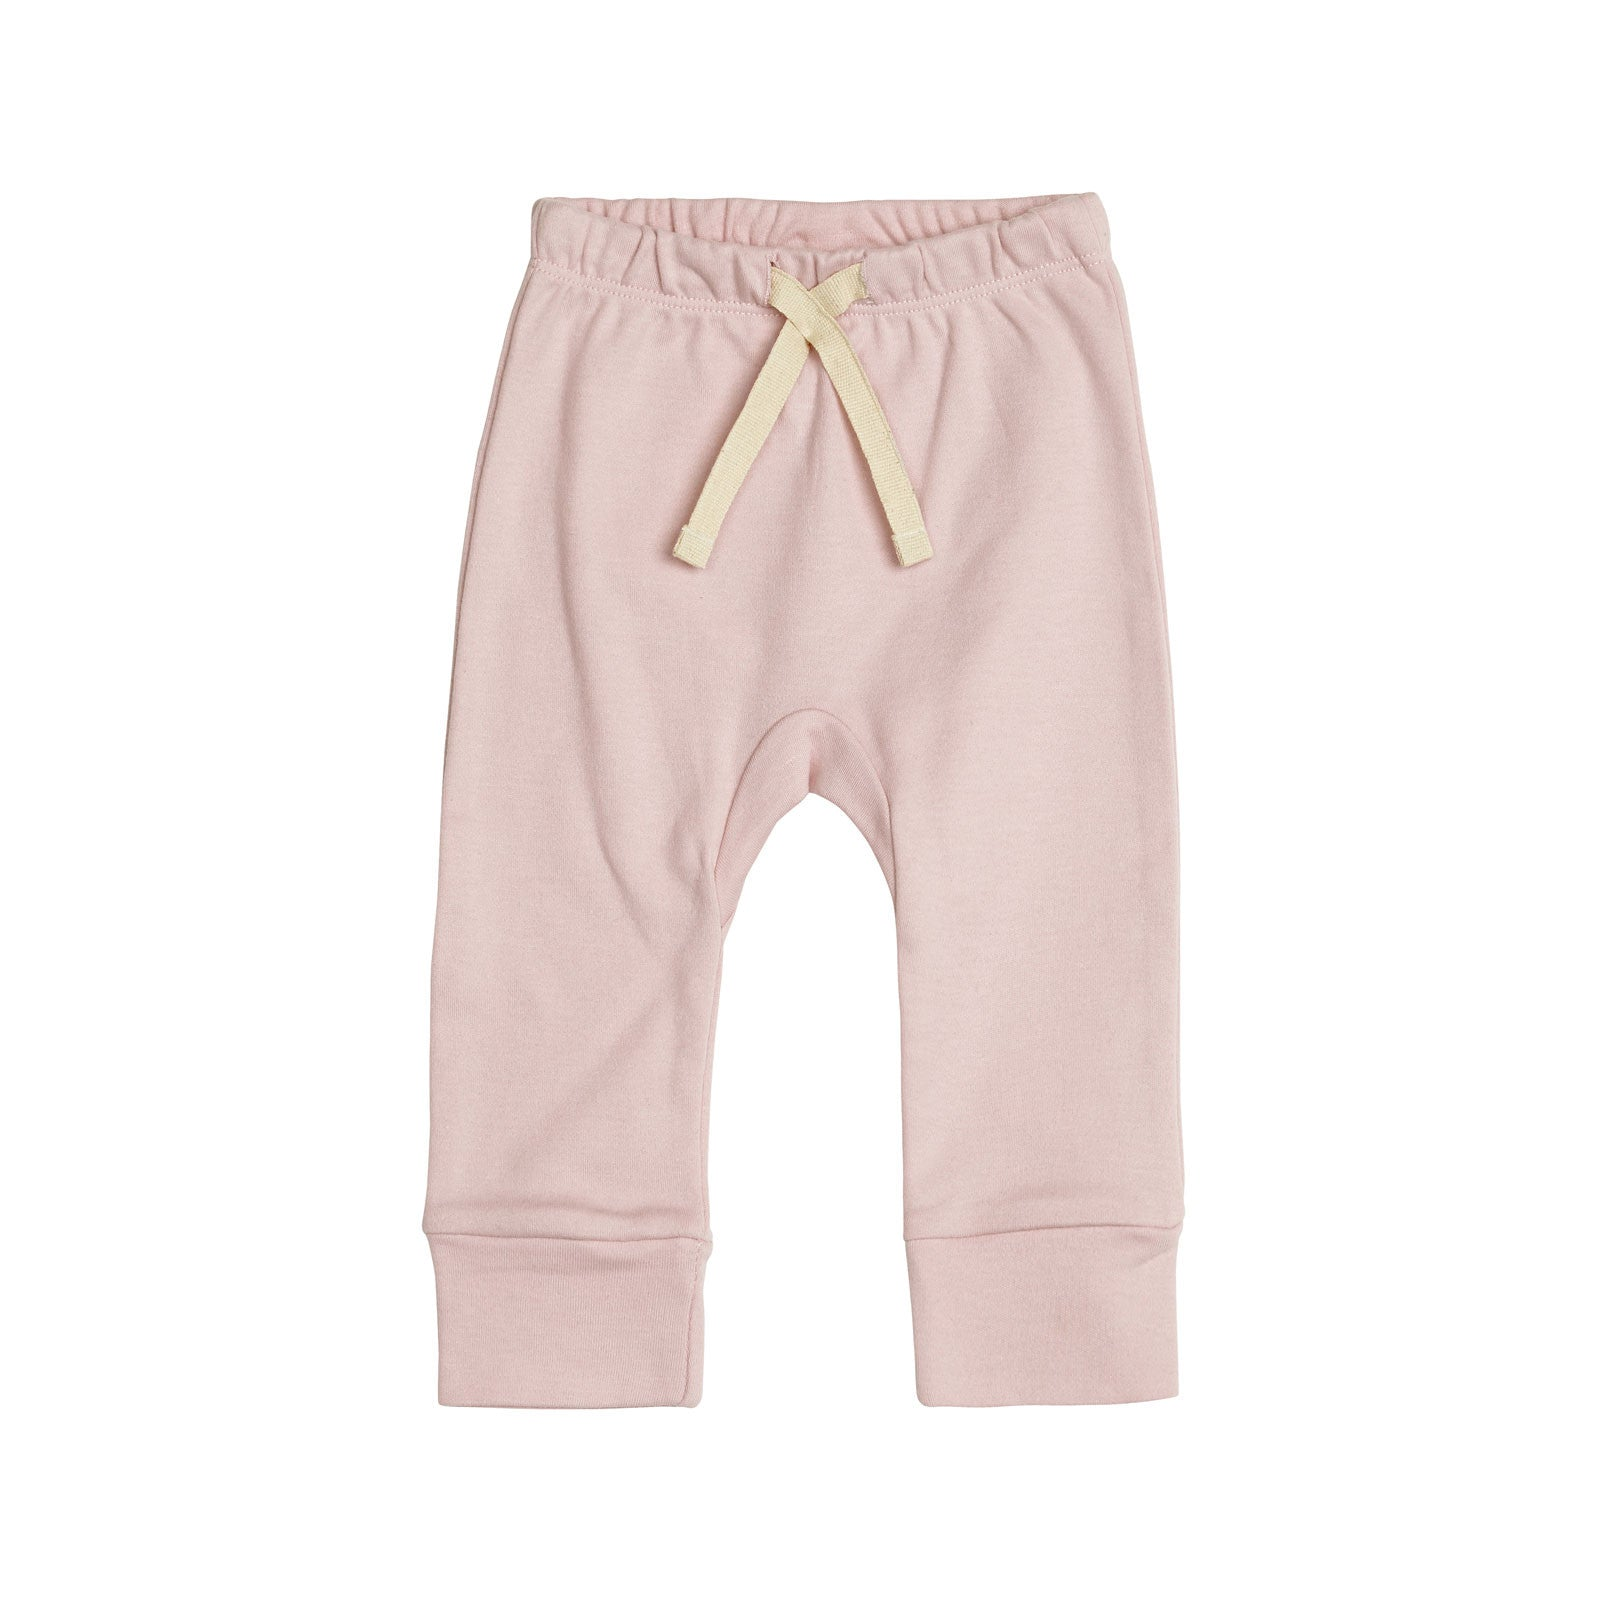 Sapling Child Essentials Heart Pants Sapling Child Baby & Toddler Clothing 0-3M / Dusty Pink at Little Earth Nest Eco Shop